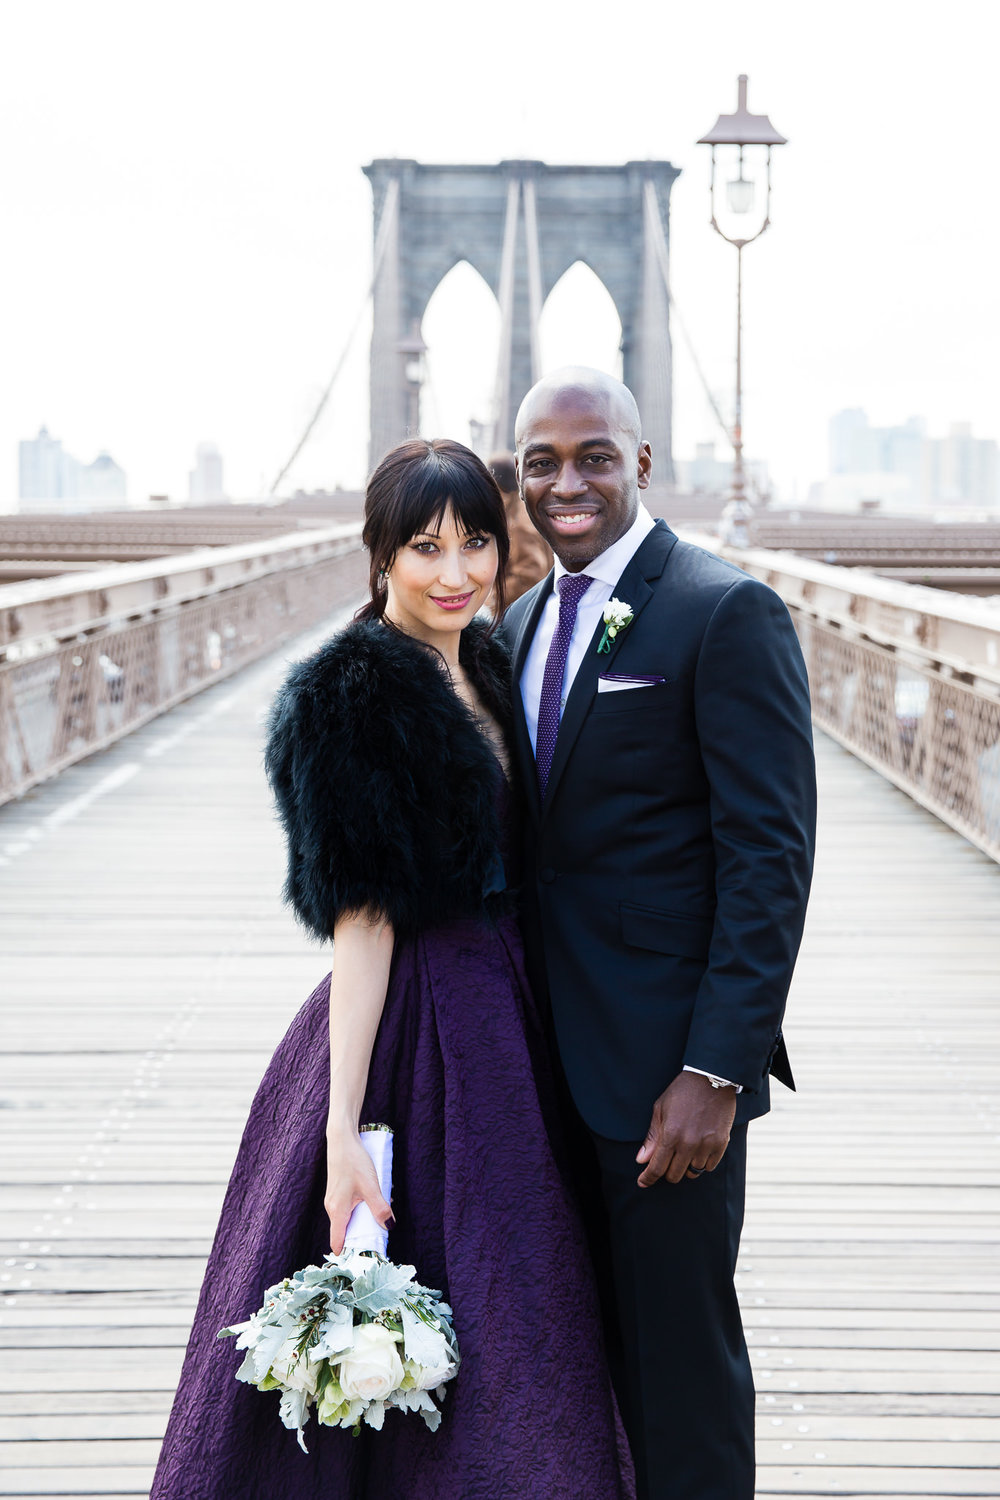 City Hall Wedding | Sarah Bode-Clark Photography | NYC Wedding Photographer